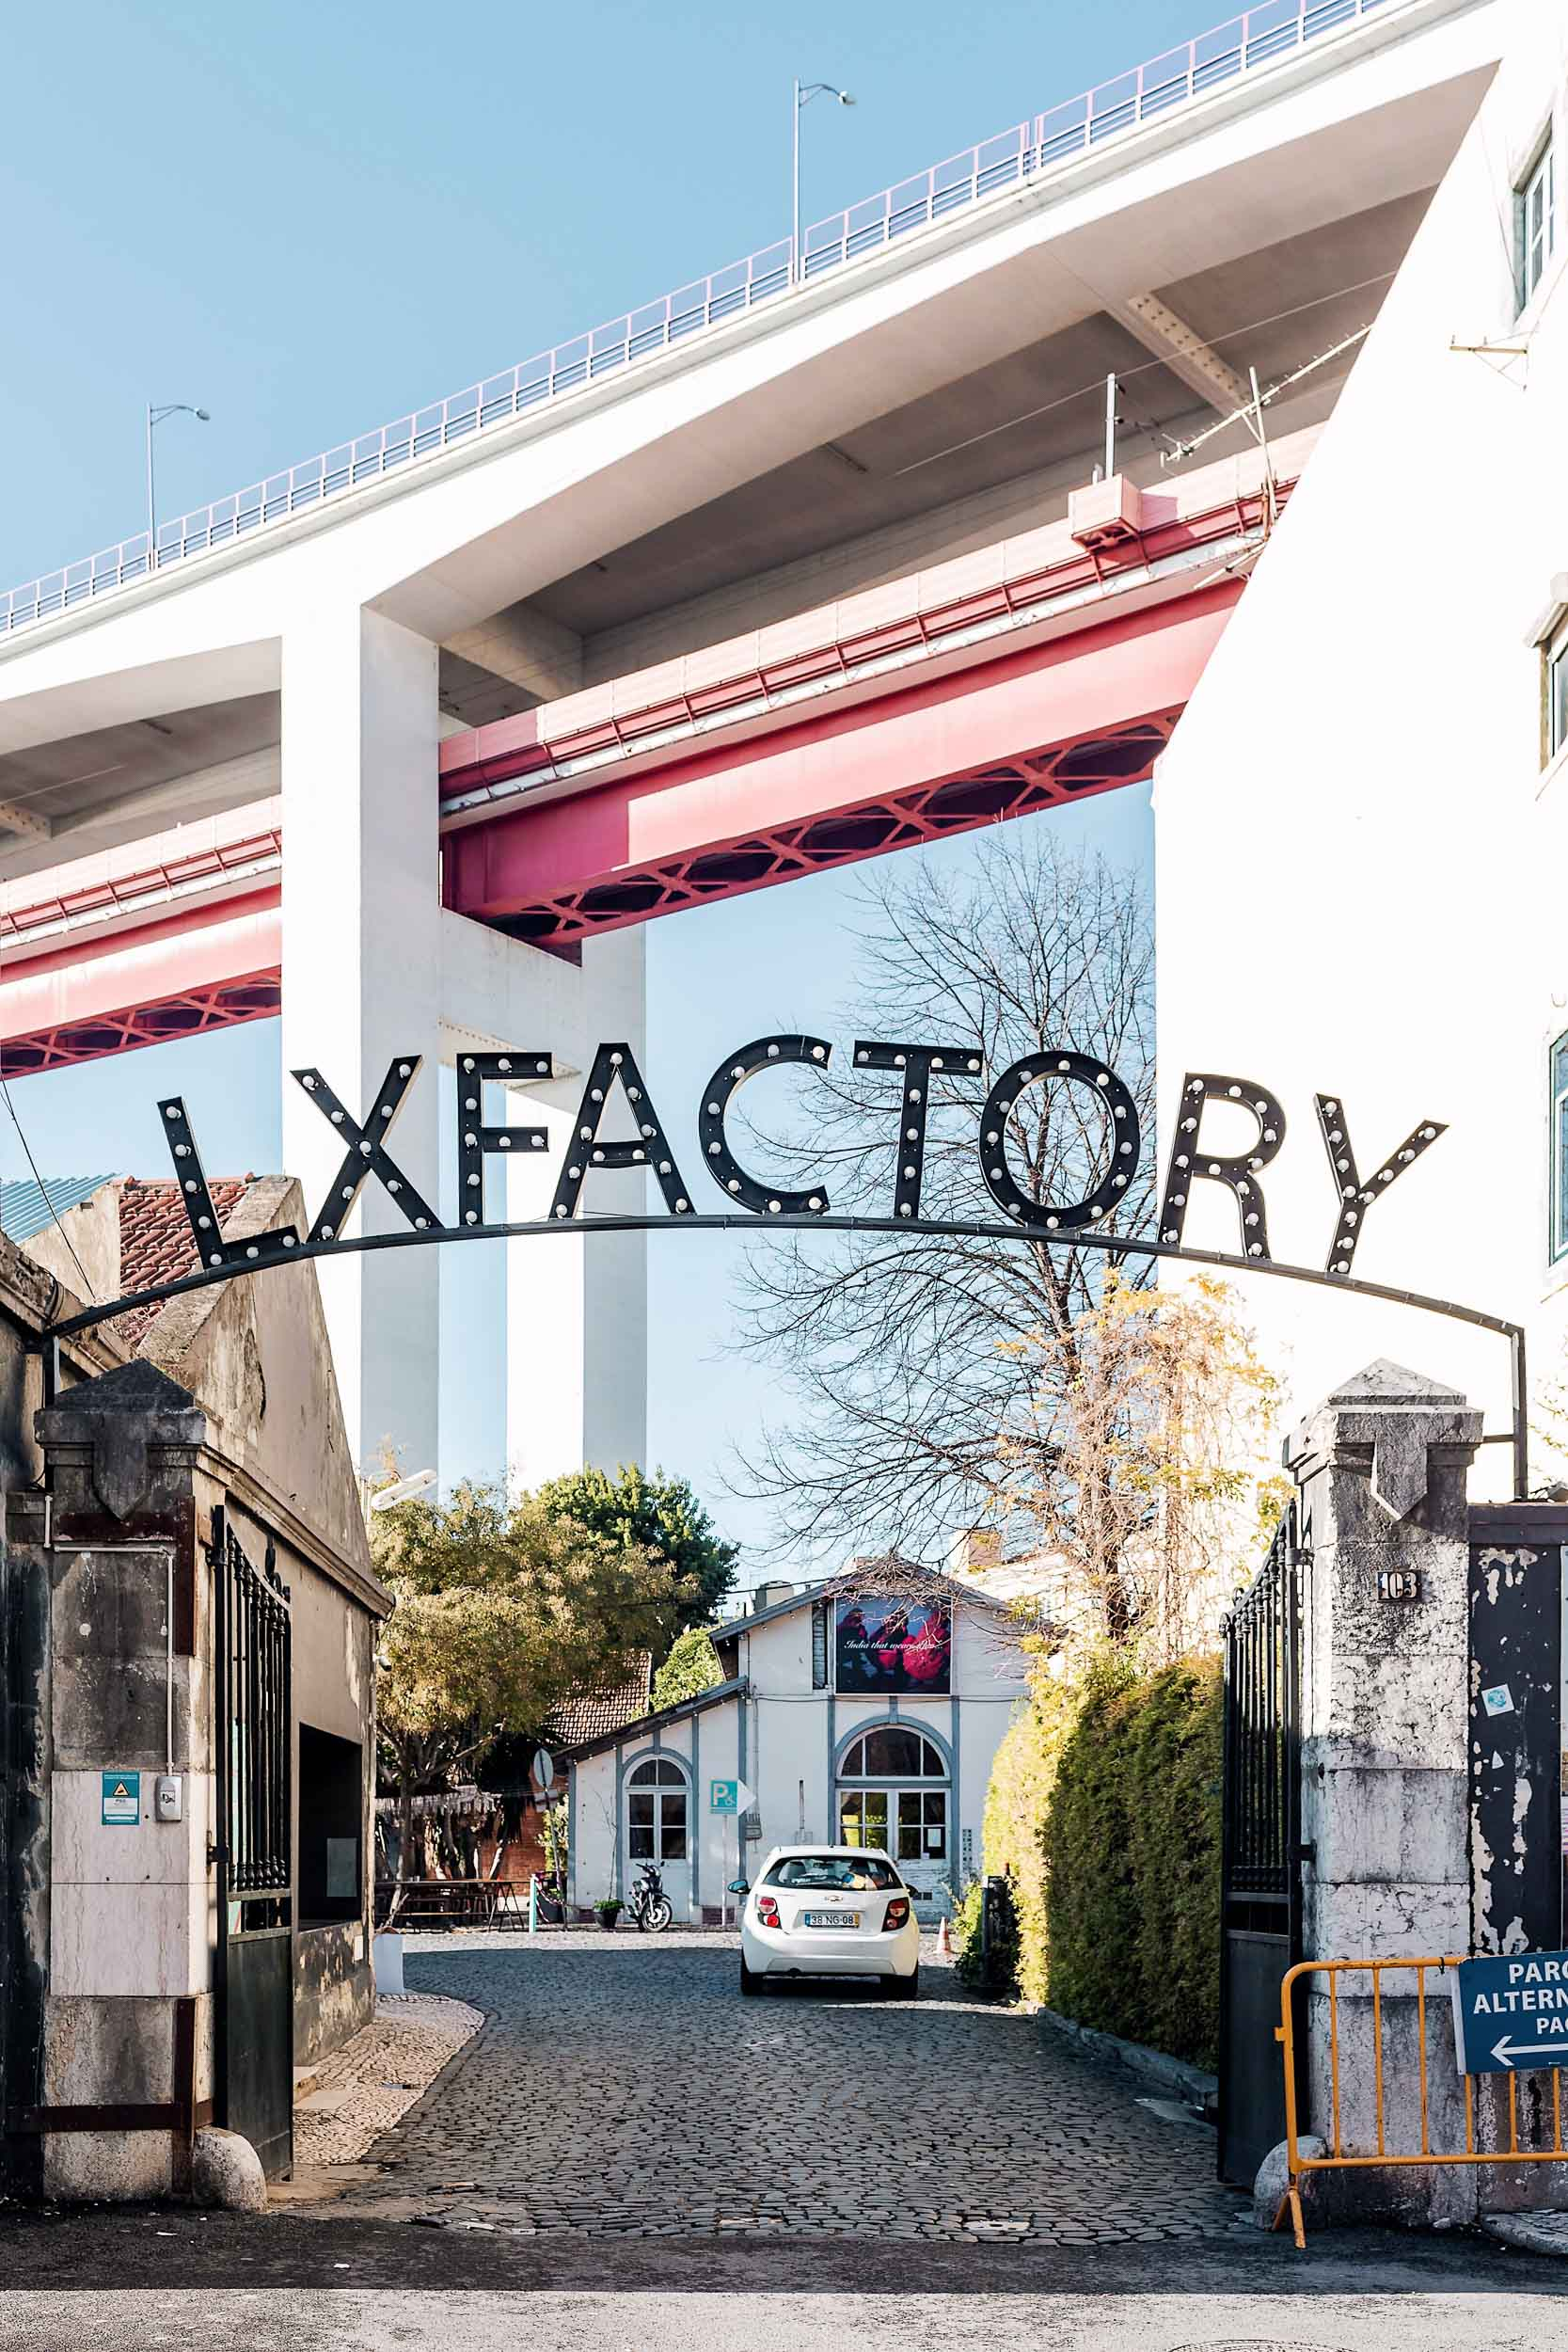 LX Factory is an art center in Lisbon, full of artsy retailers and great restaurants